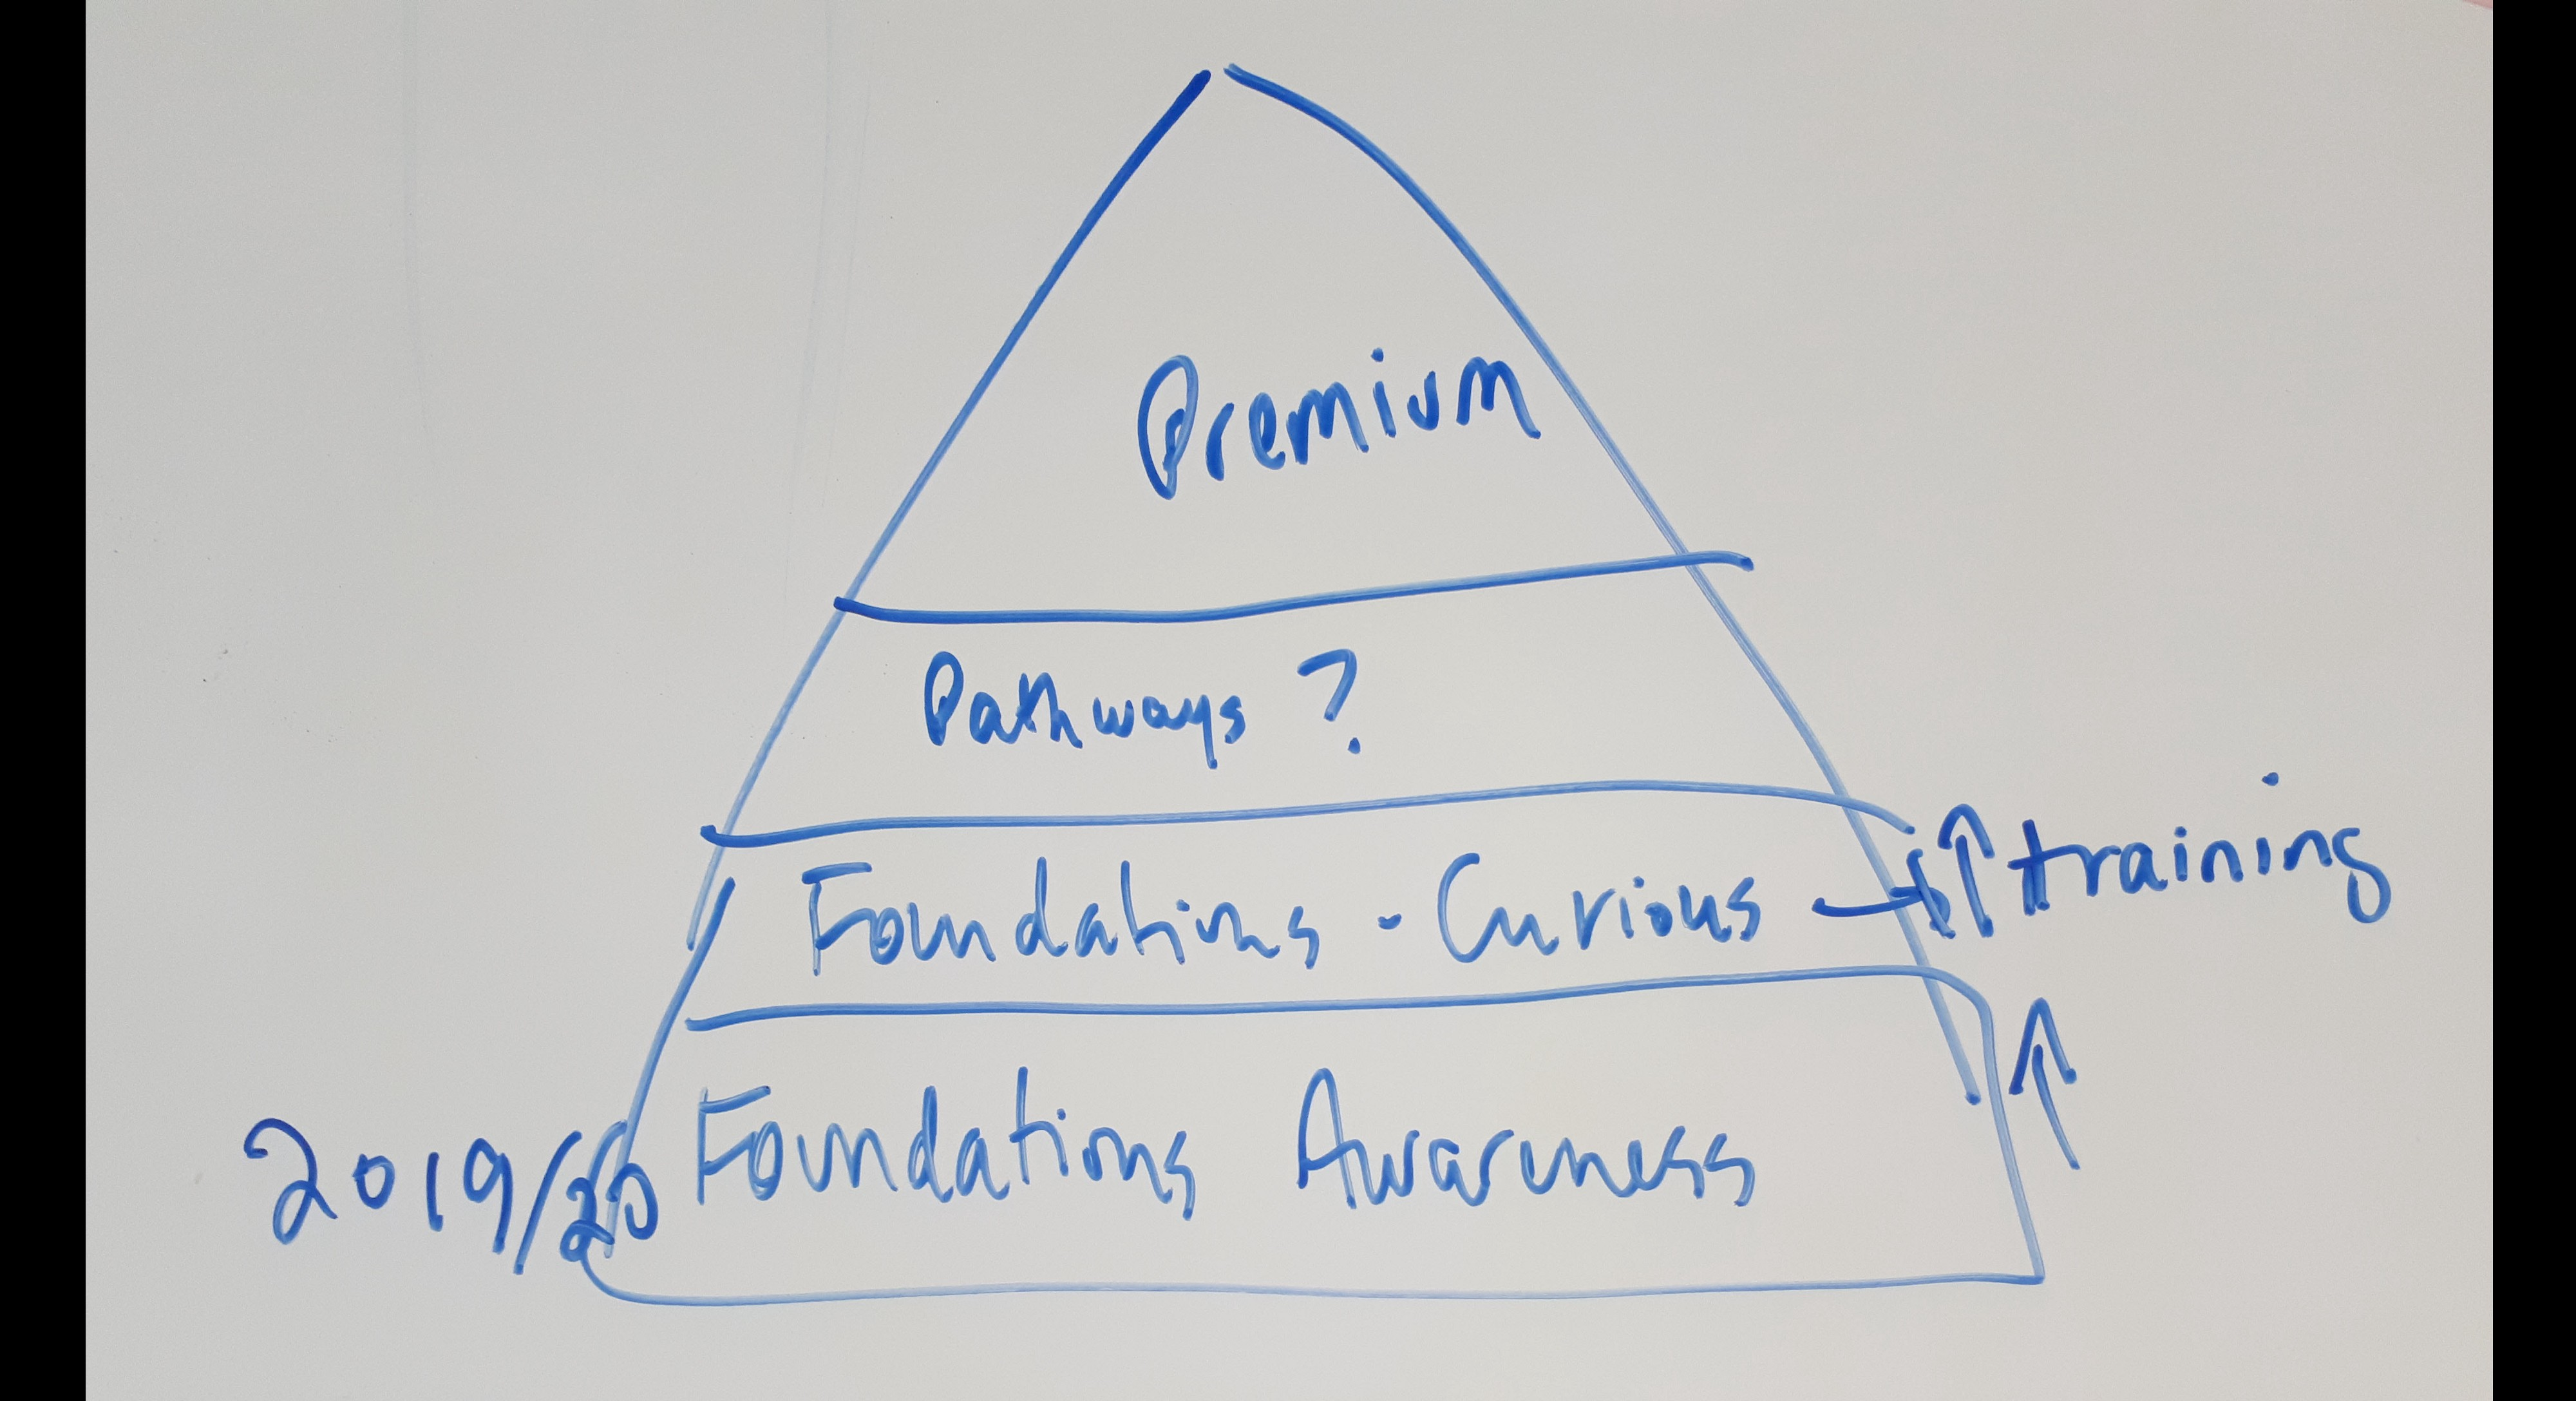 Whiteboard pyramid reads from top to bottom: Premium, Pathways, Foundations—curious, Foundations—awareness.